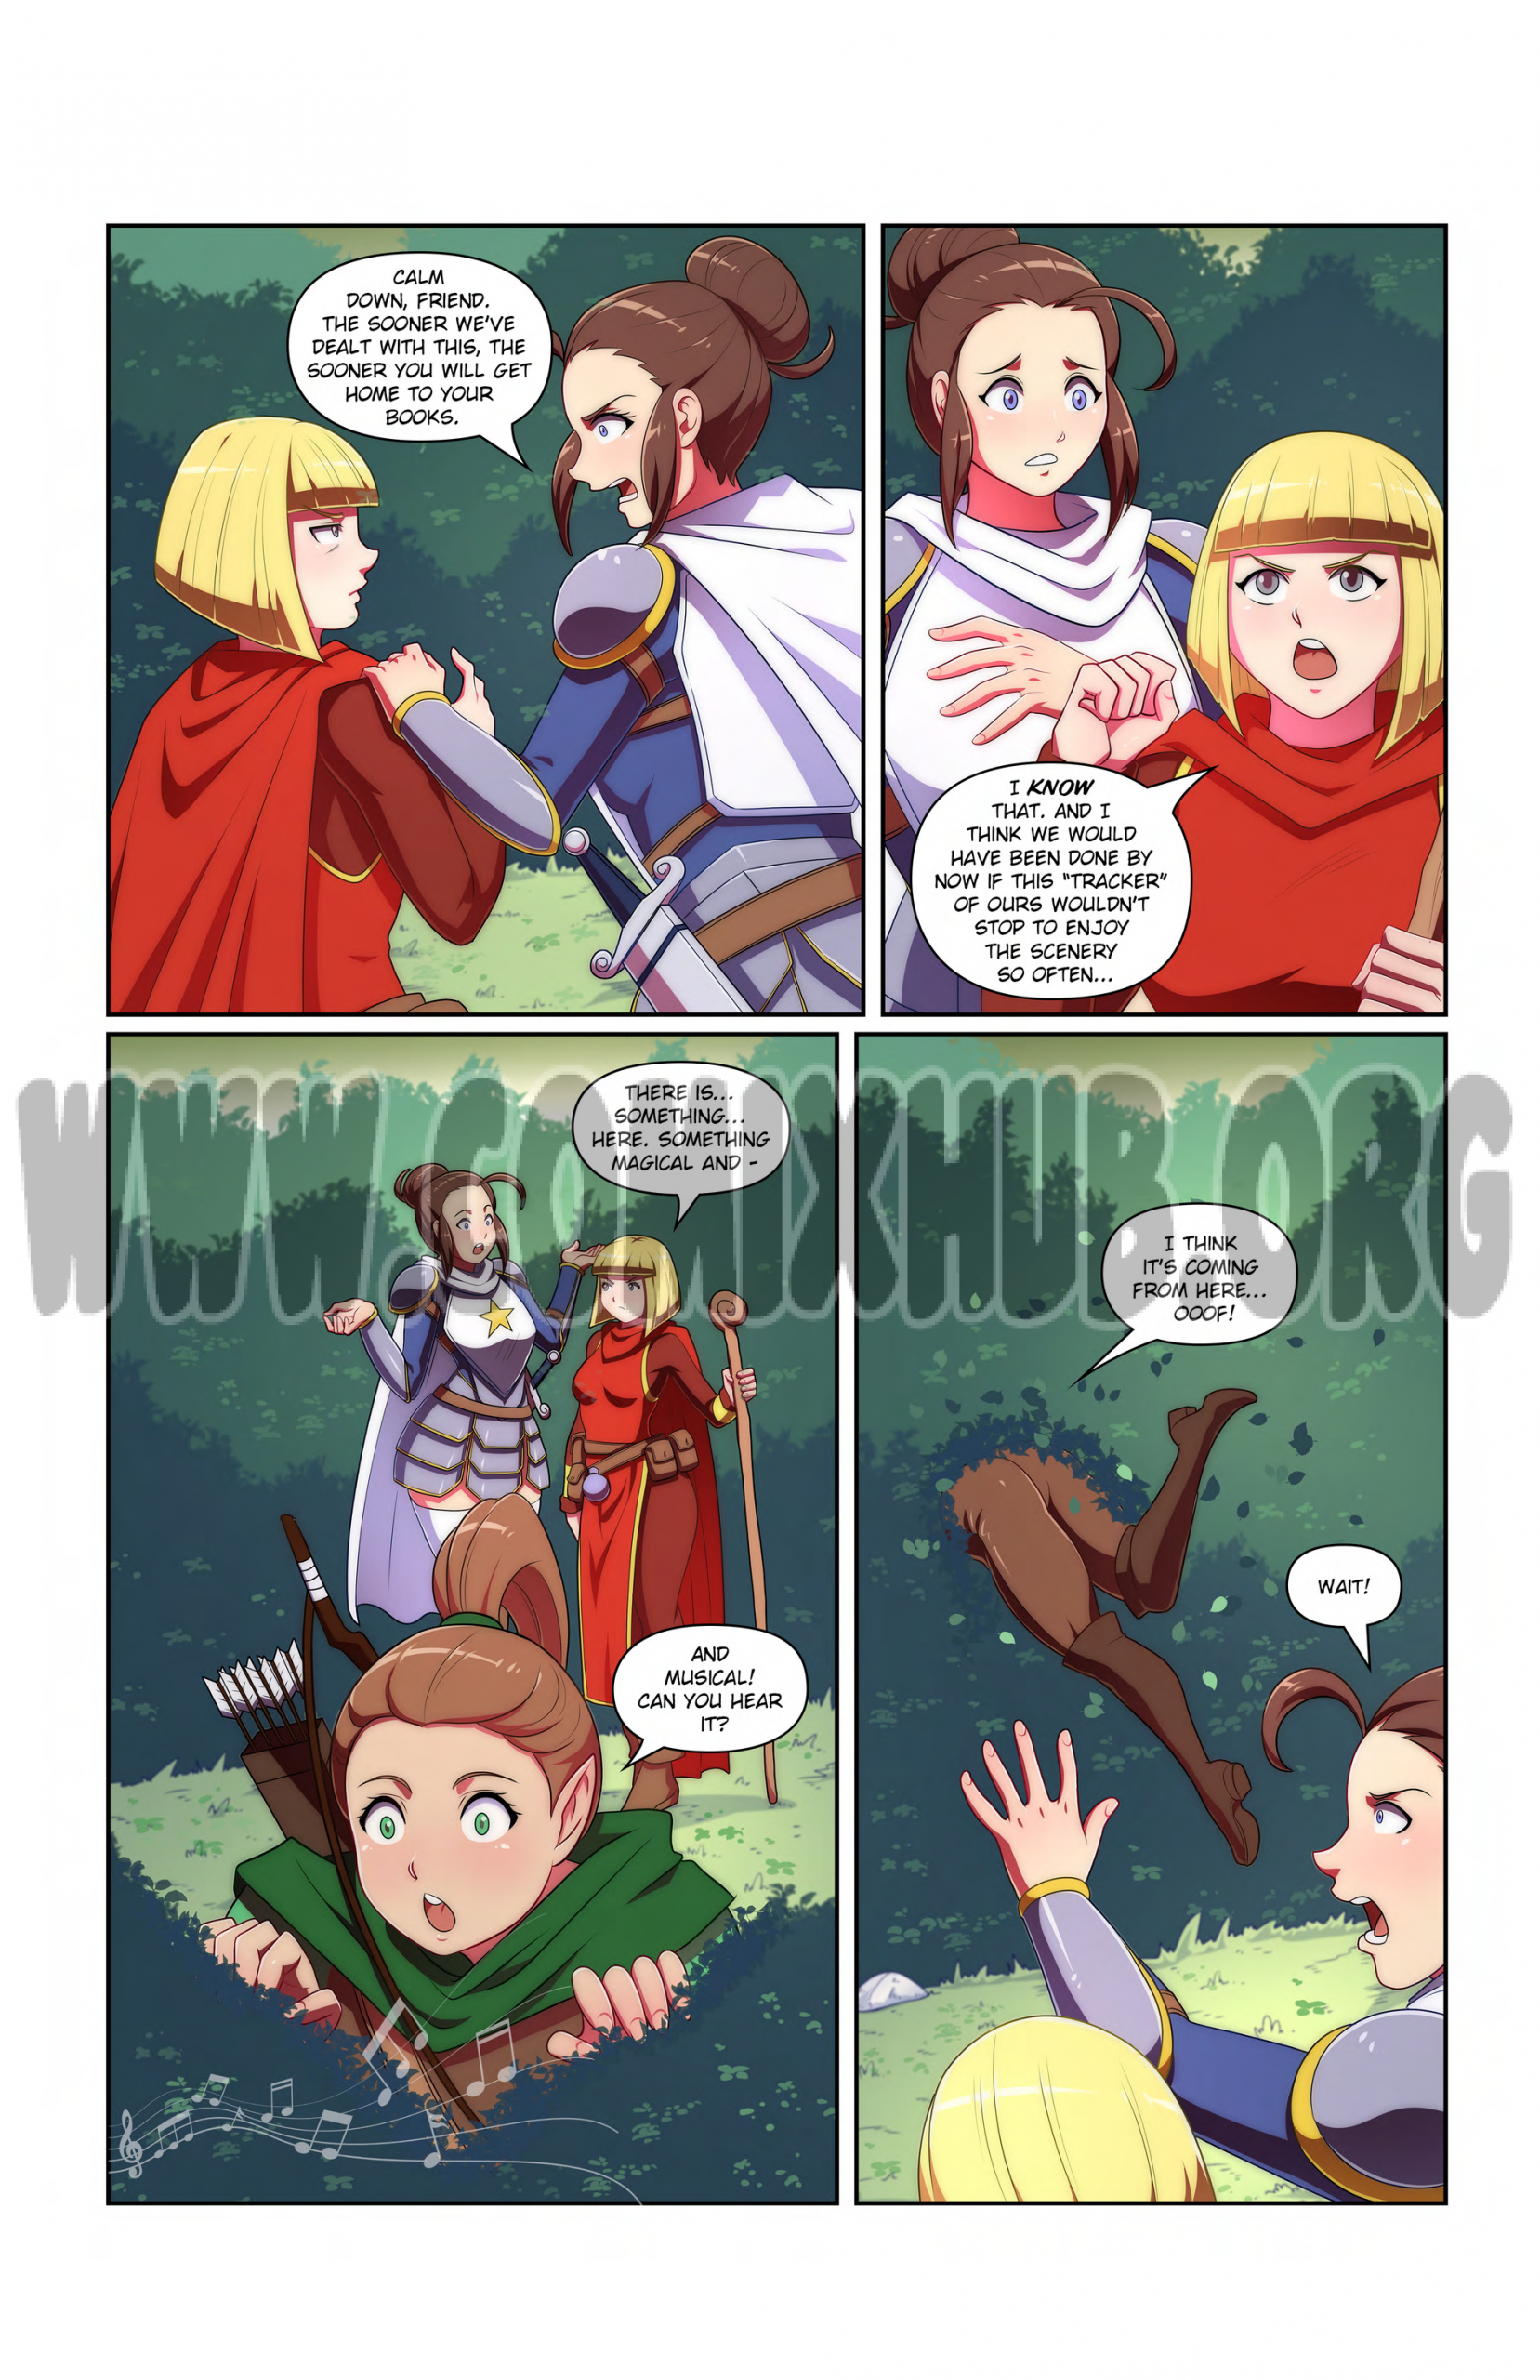 Lost in the Woods porn comics Oral sex, Big Tits, cunnilingus, Fantasy, Monster Girls, Sex and Magic